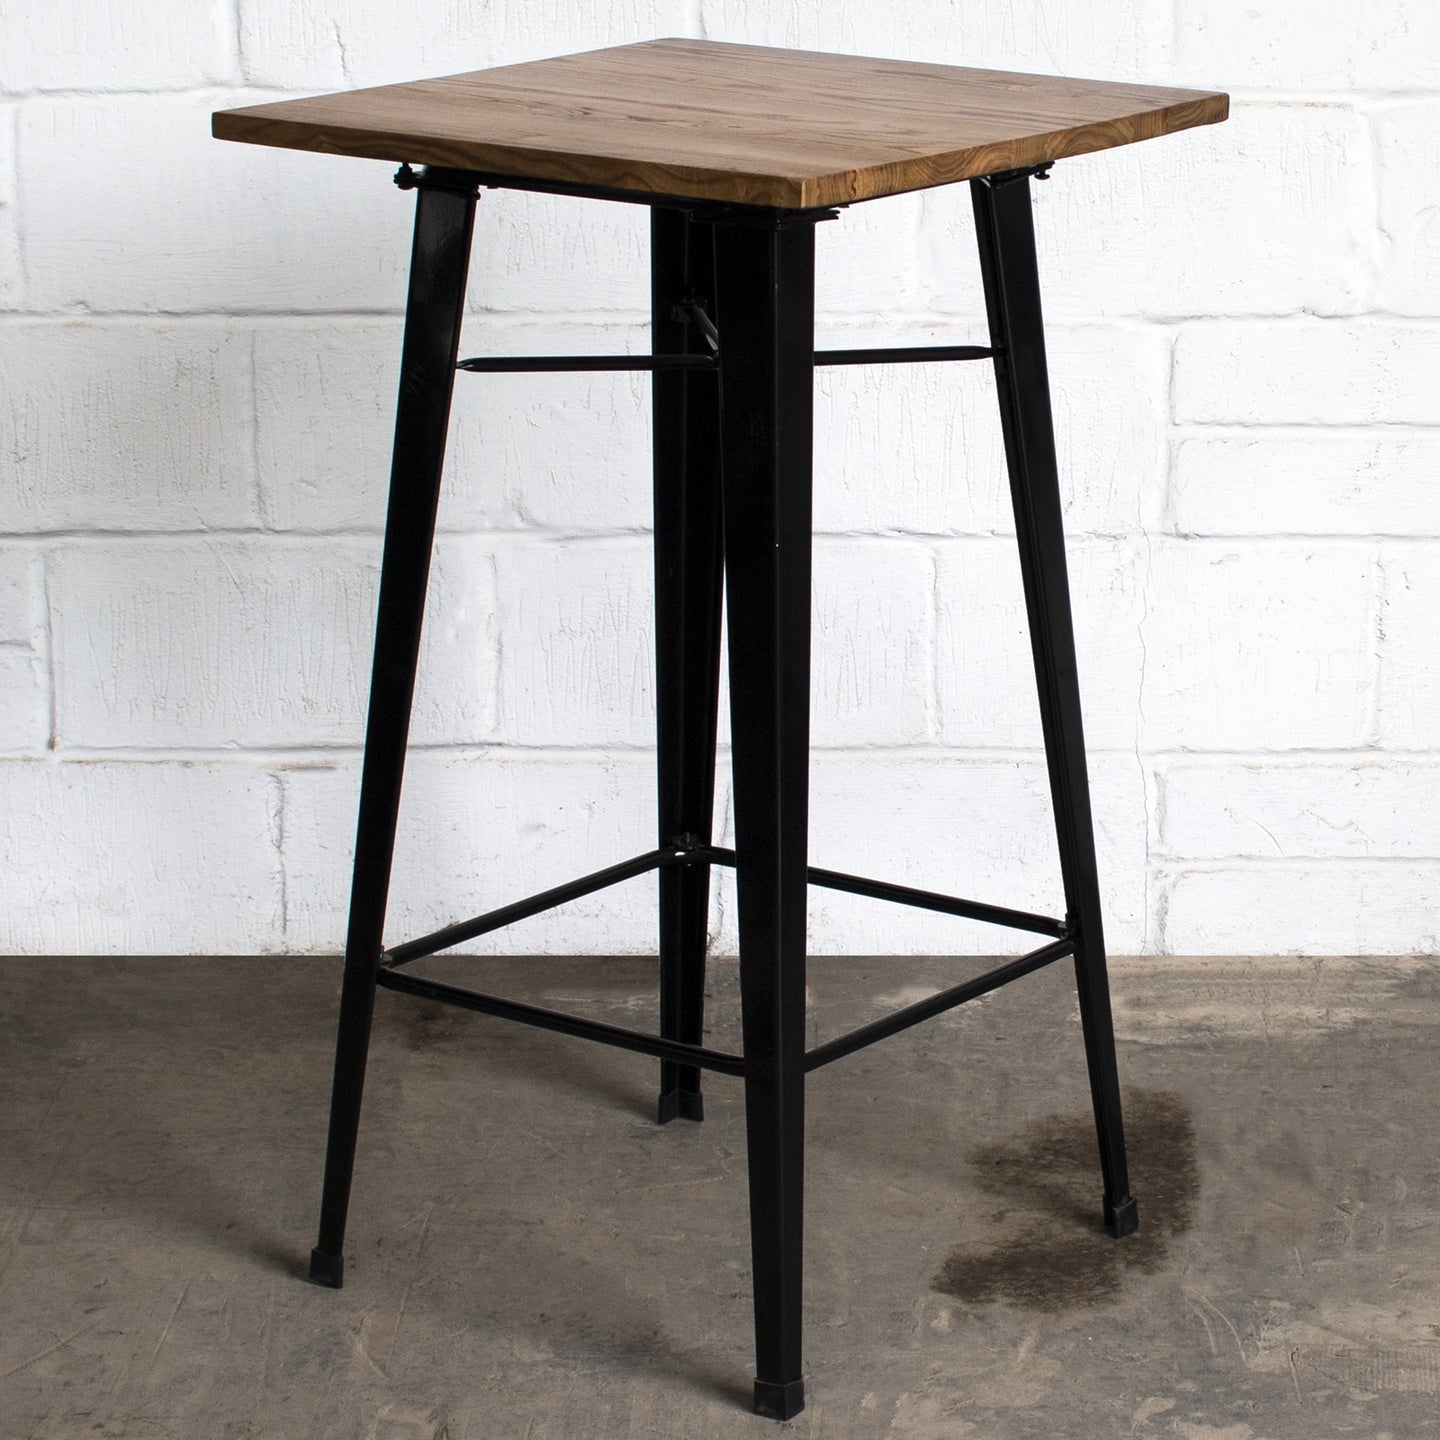 3PC Lodi Table & Pascale Bar Stool Set - Black